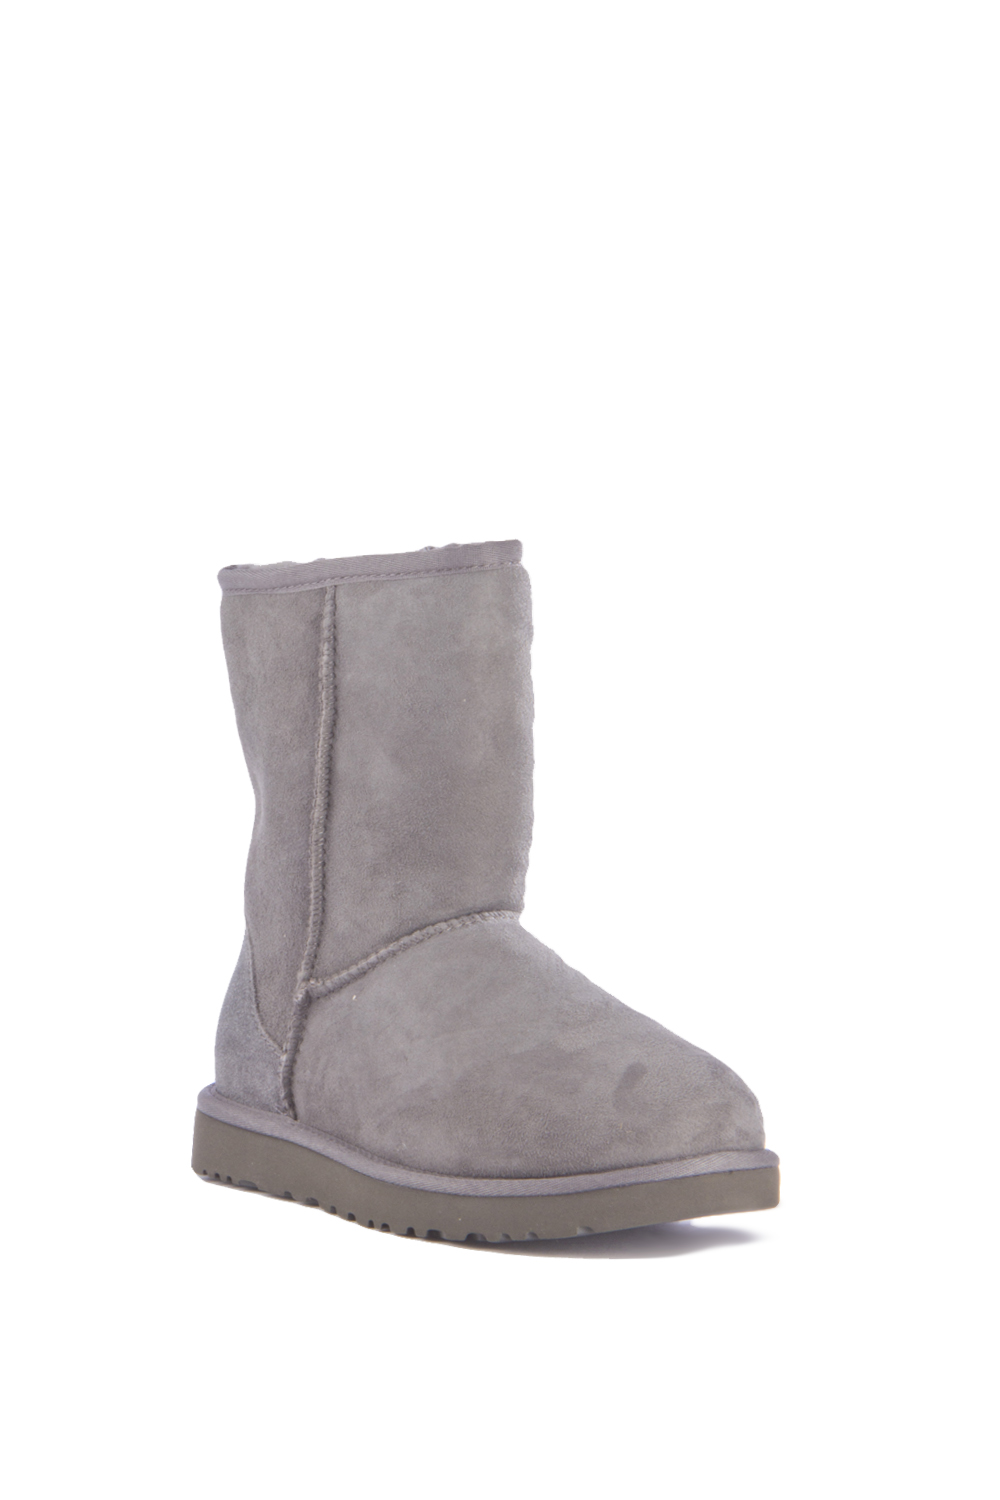 279d1a0d431 Short Ugg Boots With Laces